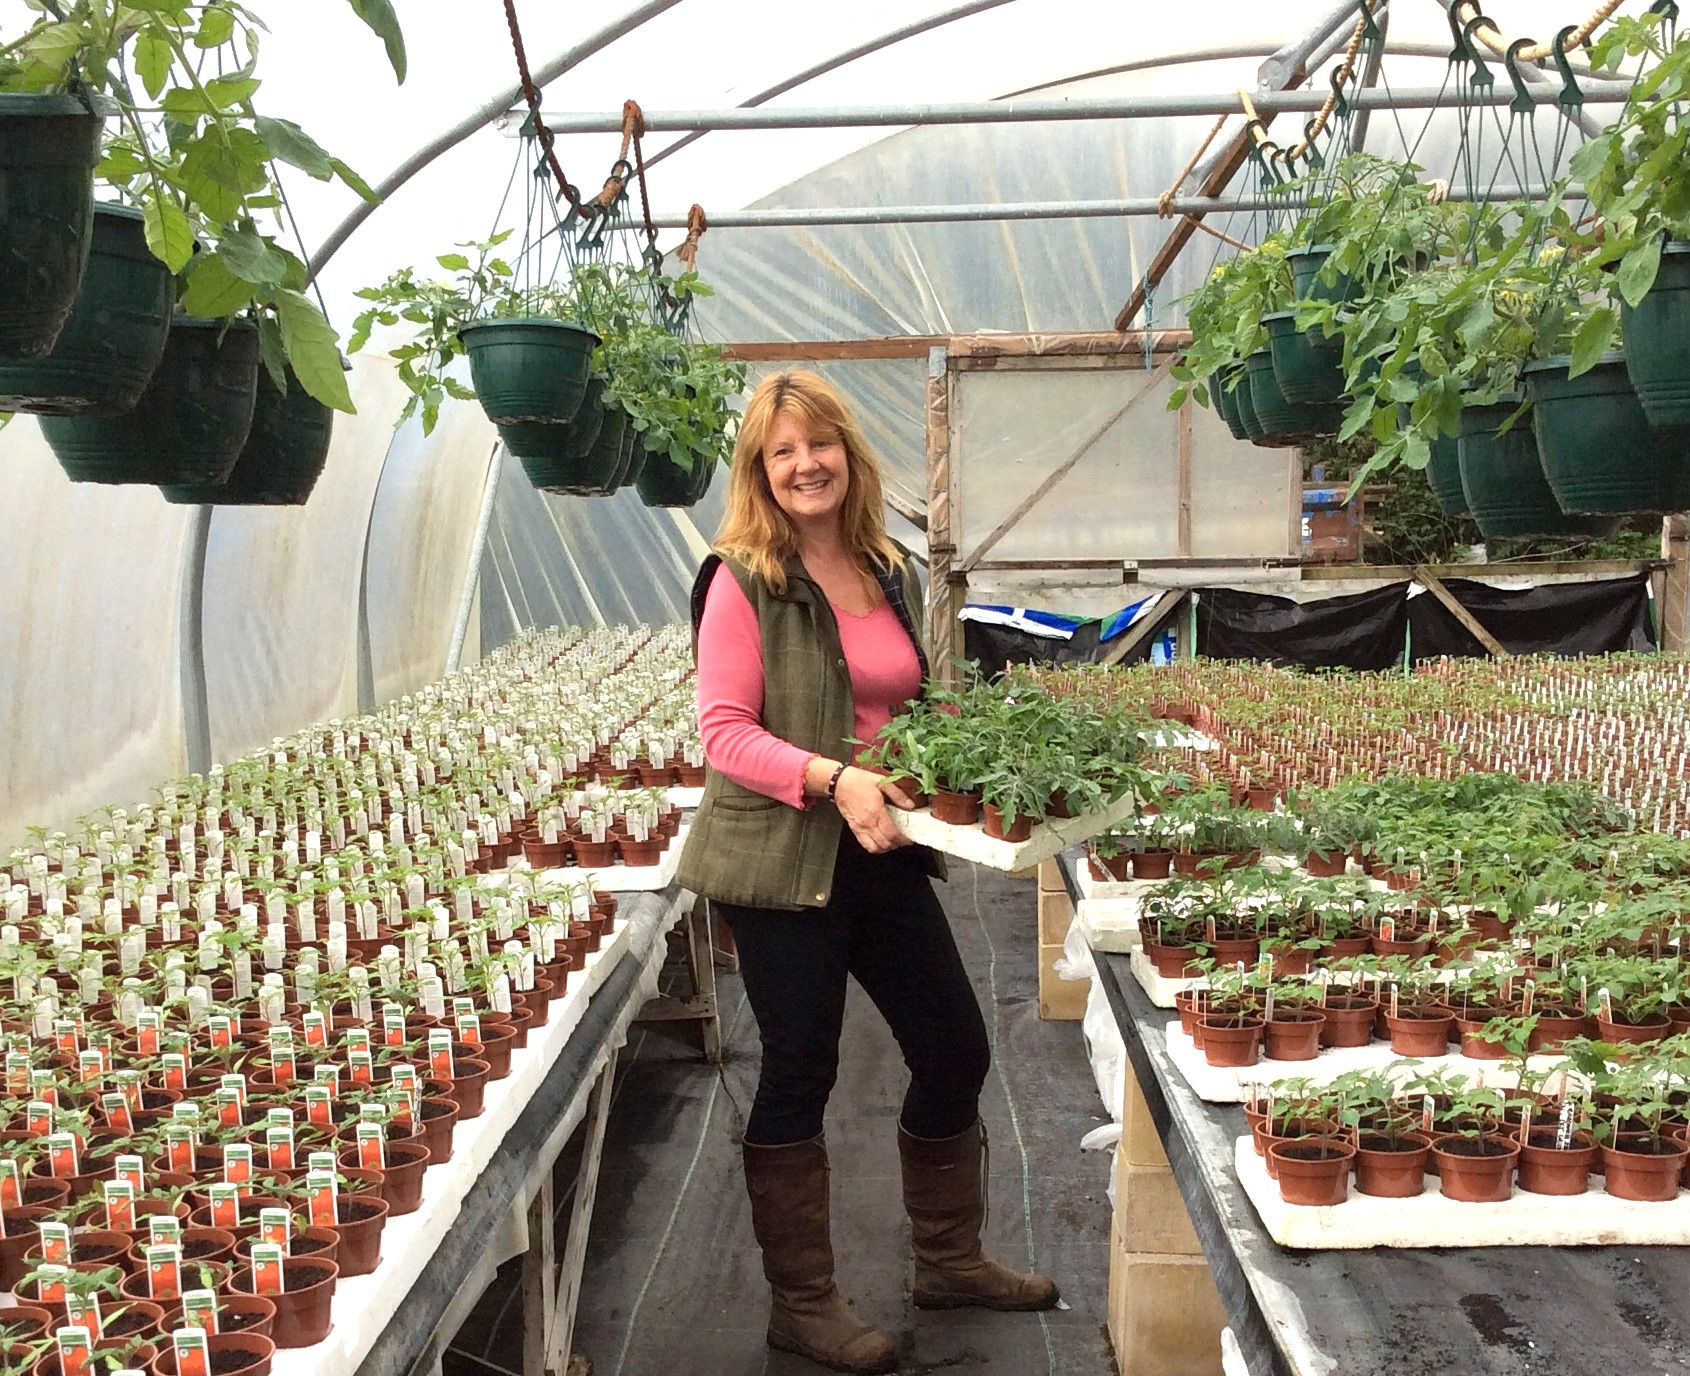 Corinne Kirkham, owner manager of Windrush Farm Growers in Wimborne, is set to visit customers at Haskins Garden Centre on Saturday April 22